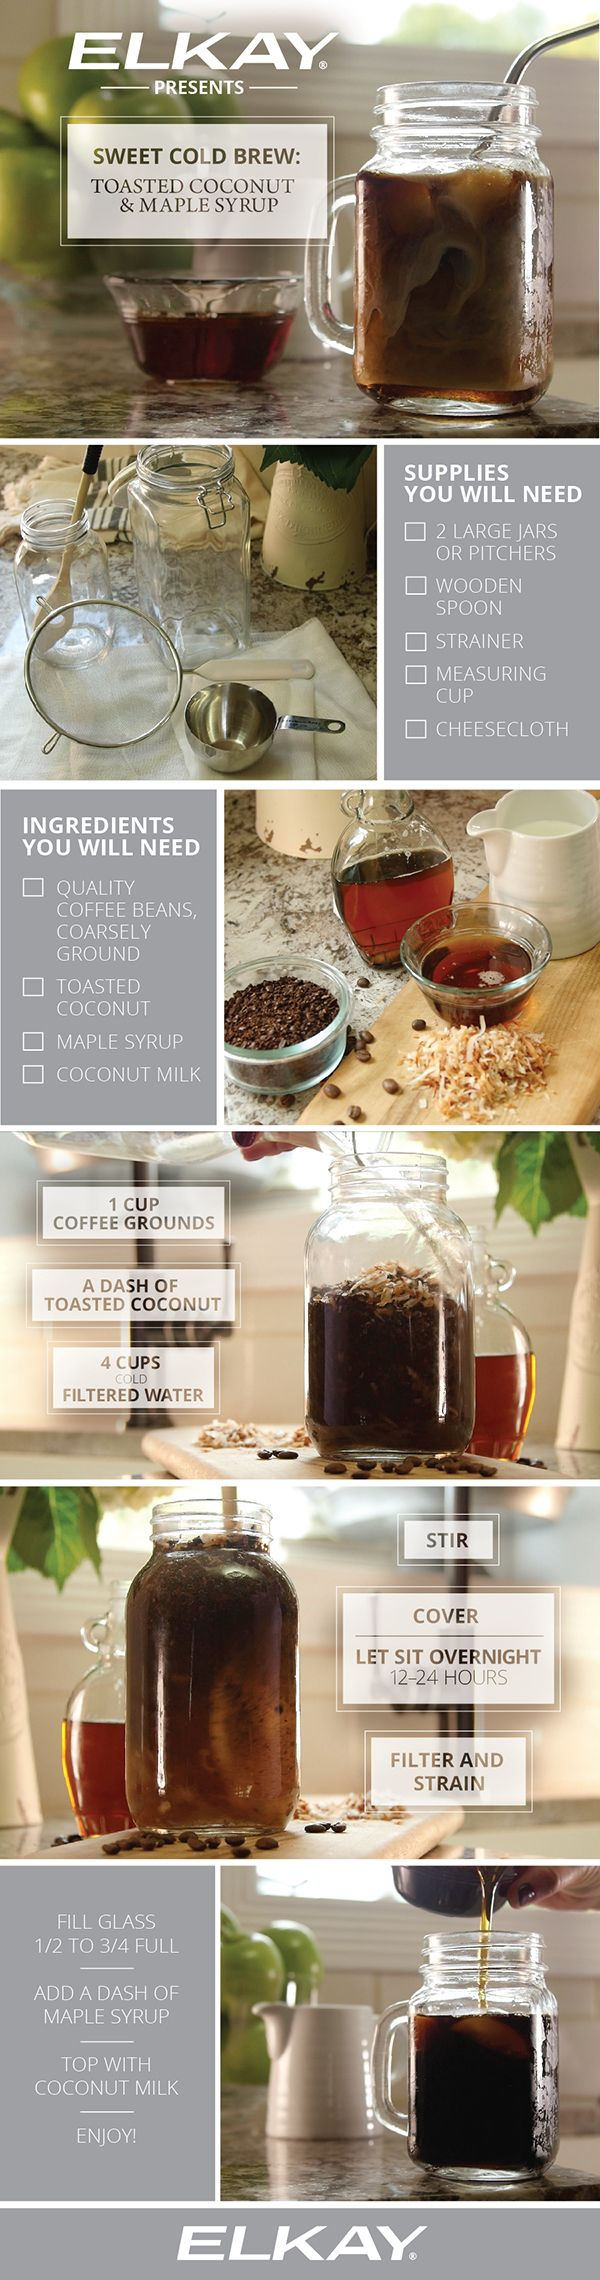 How to make delicious toasted coconut and maple syrup cold brew coffee.   This sweet concoction is rich with coconut and maple flavors and has an easy step by step recipe. You'll need coarsely ground coffee beans, toasted coconut, coconut milk or a cream of choice and a dash of maple syrup. Enjoy!